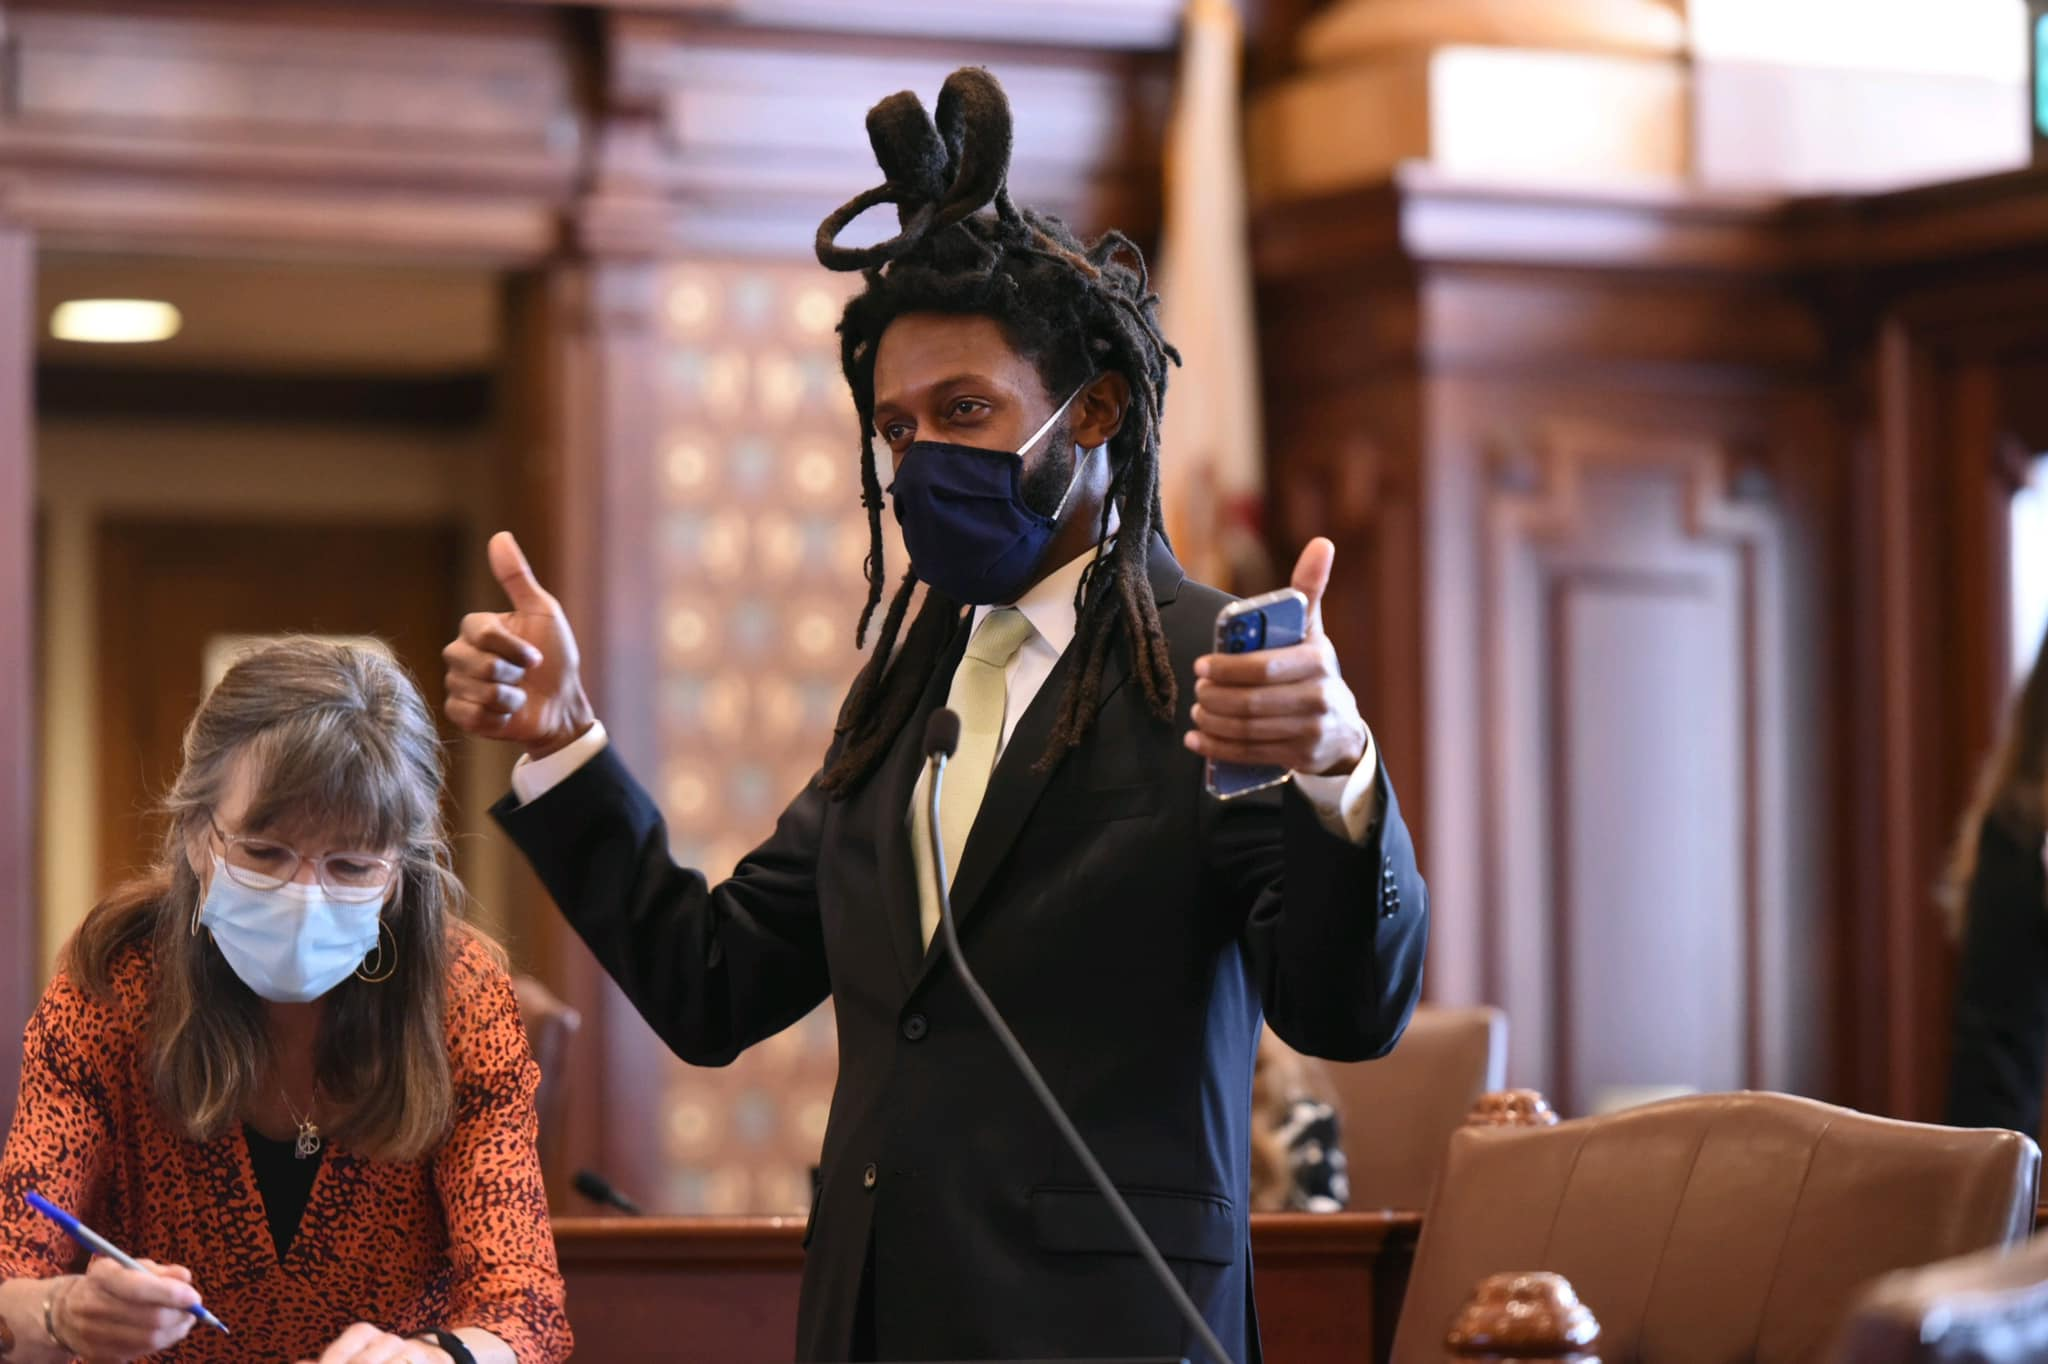 State Sen. Mike Simmons, D-Chicago, celebrates passage of a bill he sponsored last month.